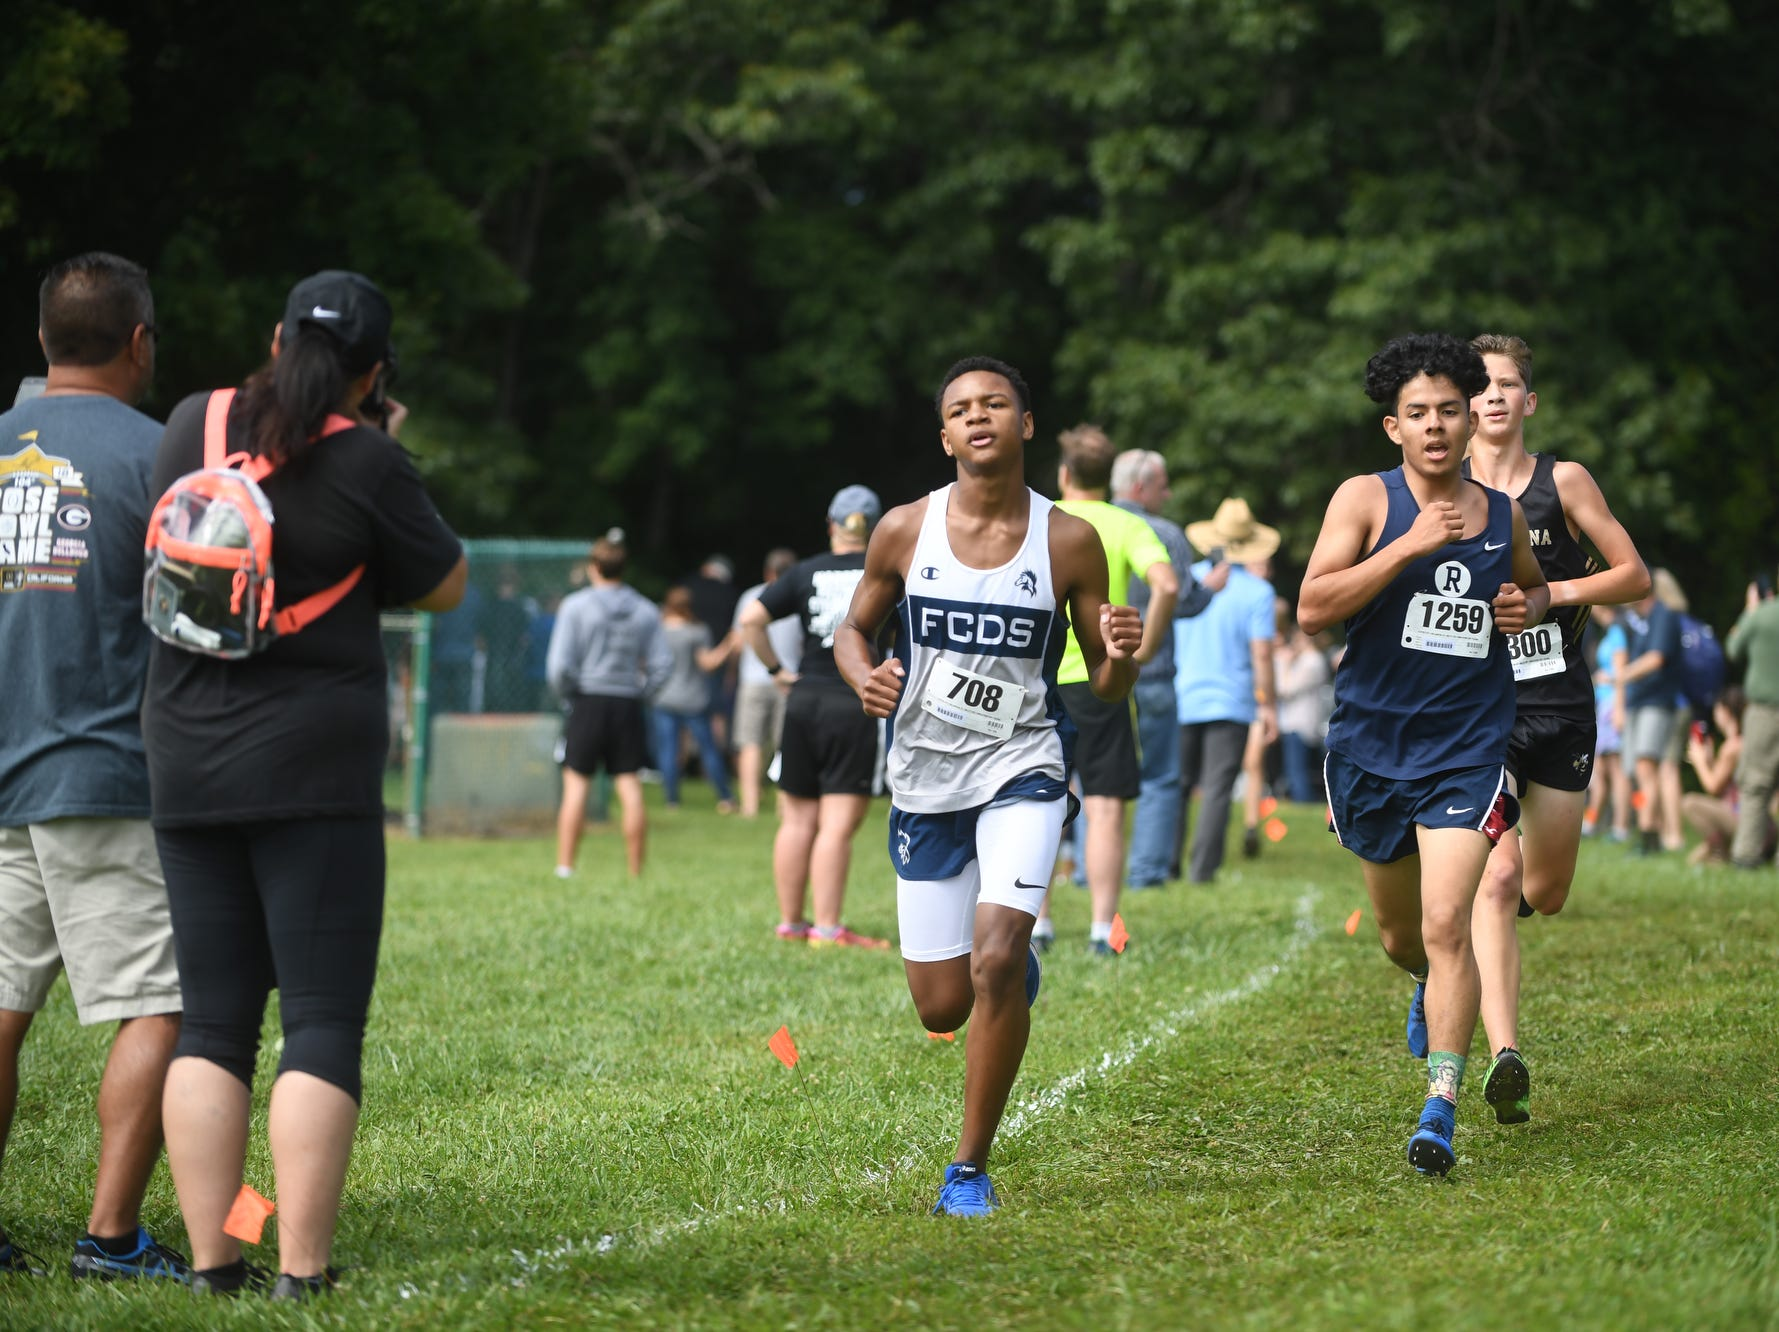 The WNC Cross Country Carnival drew 1,413 runners from North Carolina, South Carolina and Tennessee to Jackson Park in Hendersonville August 25, 2018.